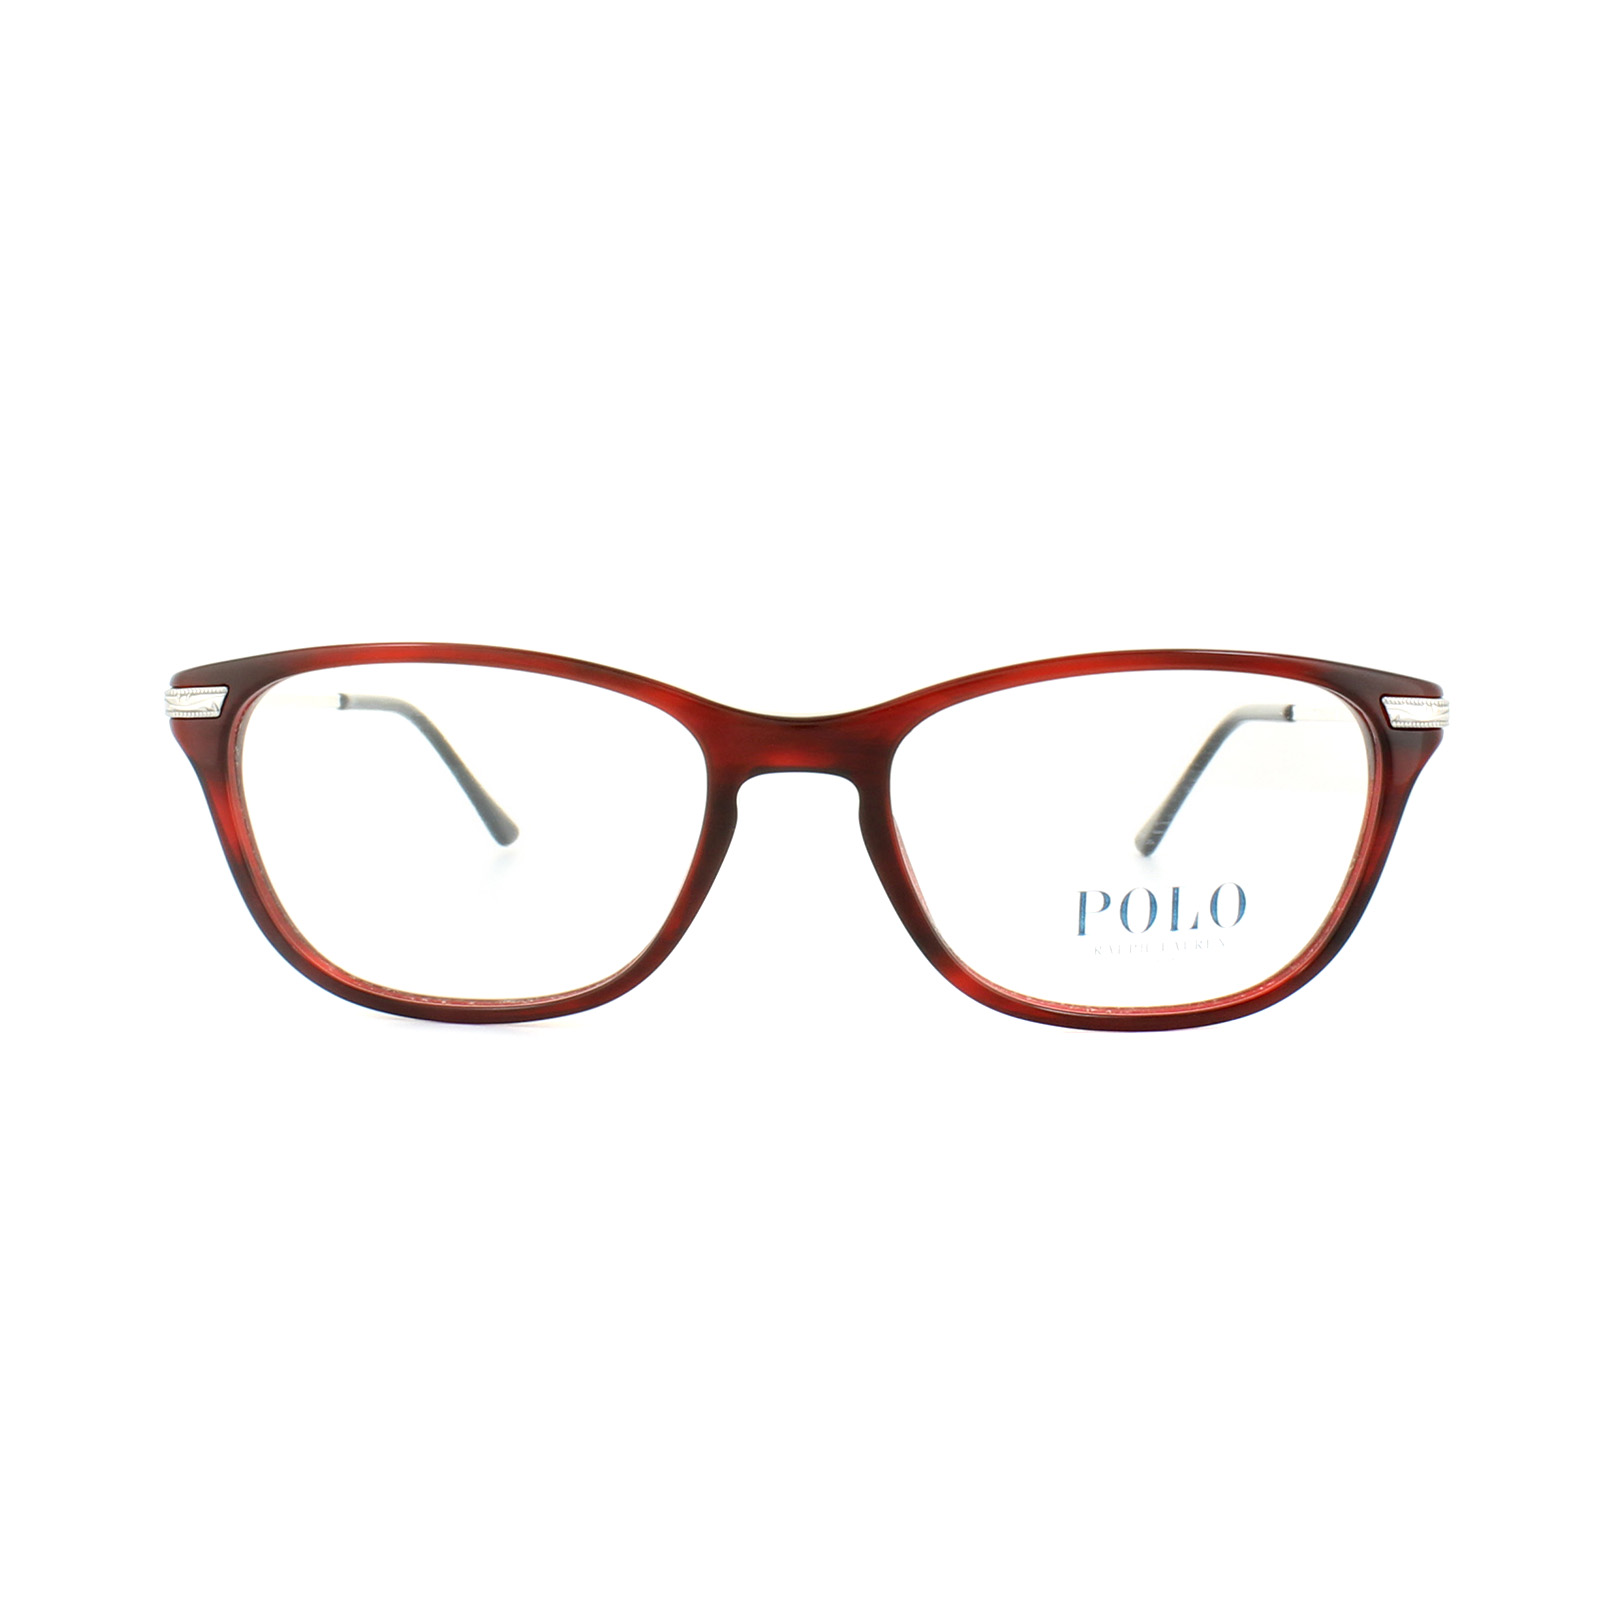 76342ccd4e Cheap Polo Ralph Lauren PH 2135 Glasses Frames - Discounted Sunglasses